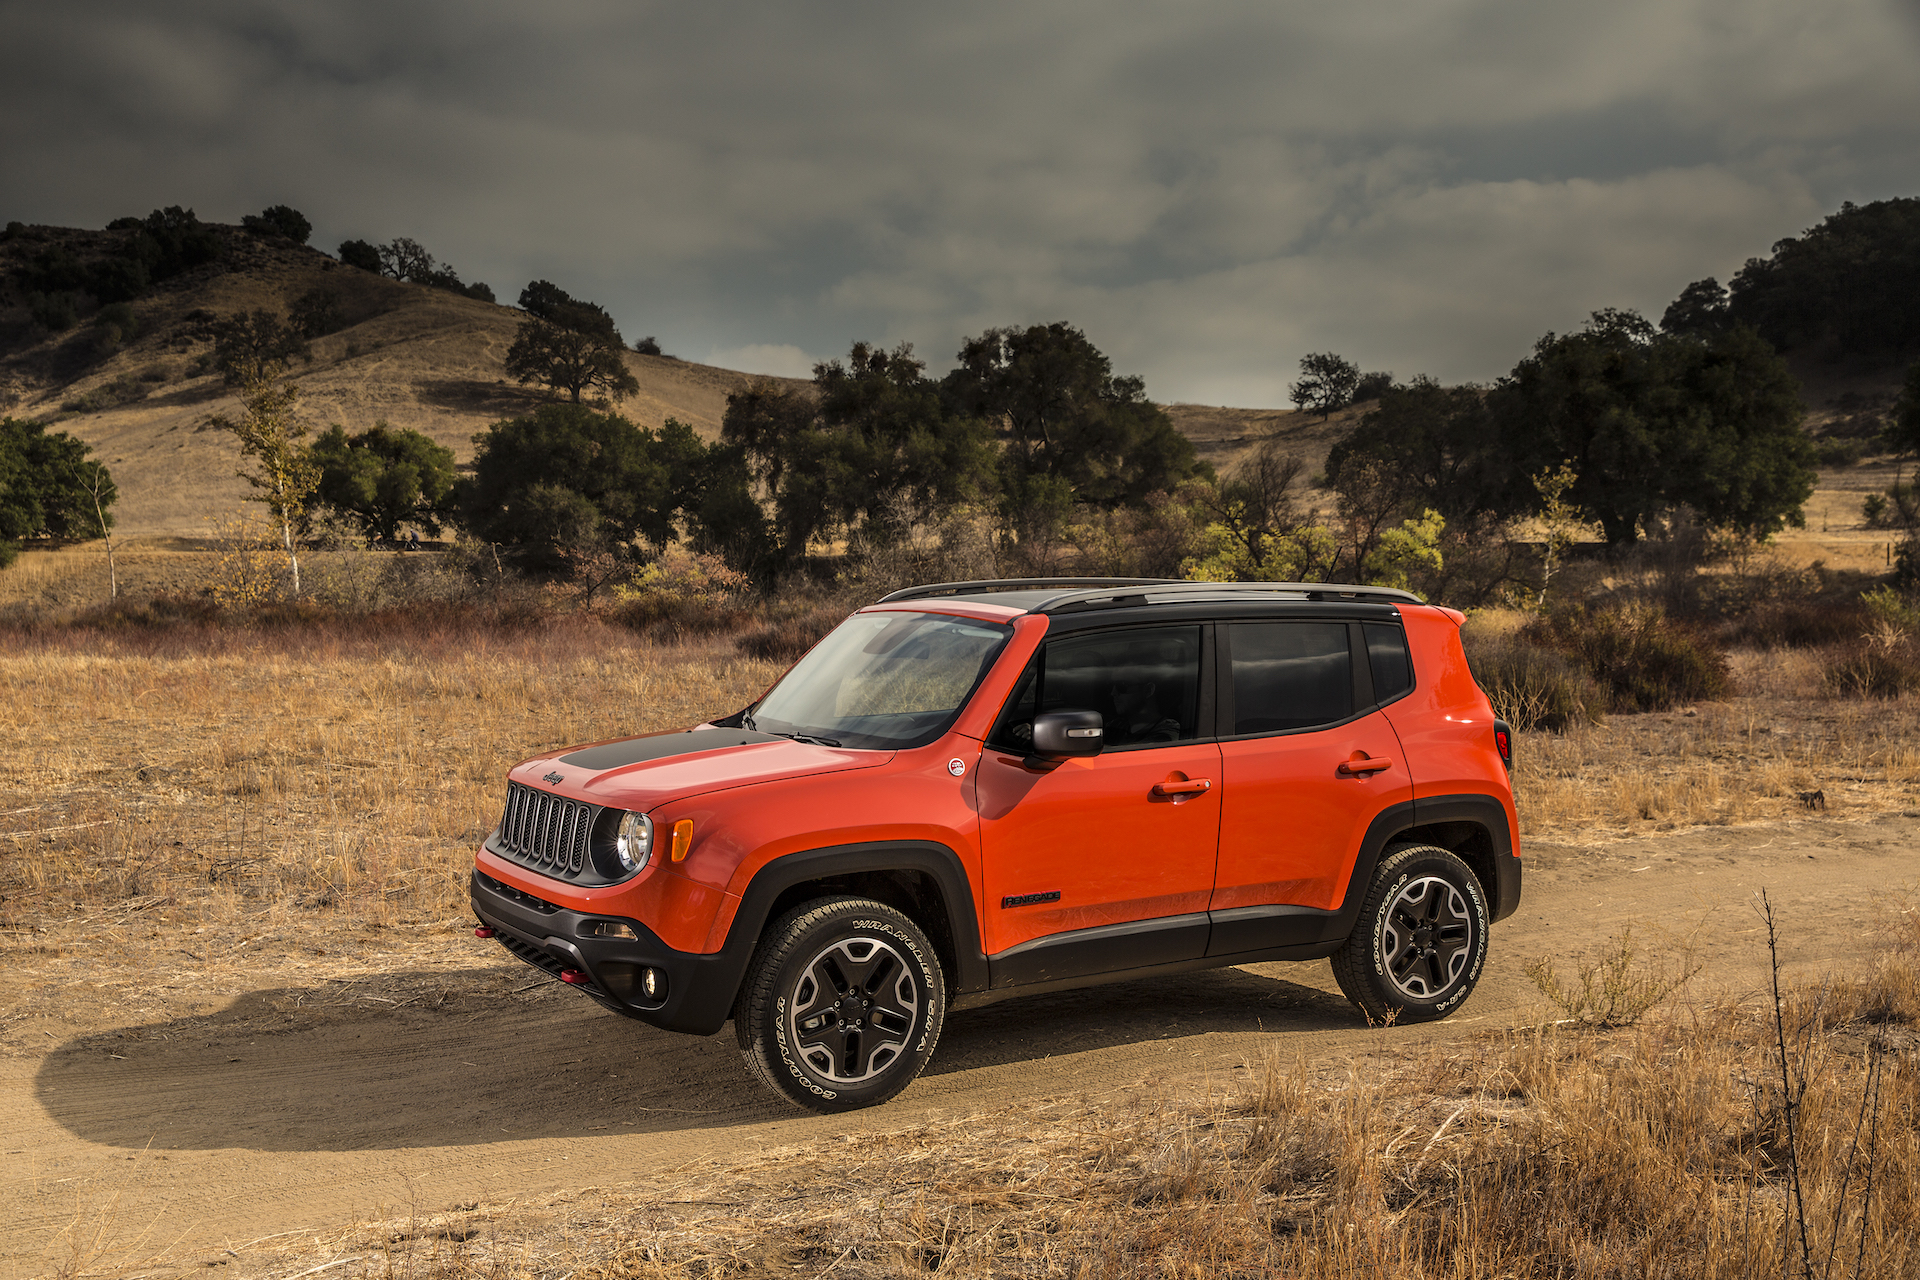 2017 Jeep Renegade Vs 2017 Chevrolet Trax Compare Cars